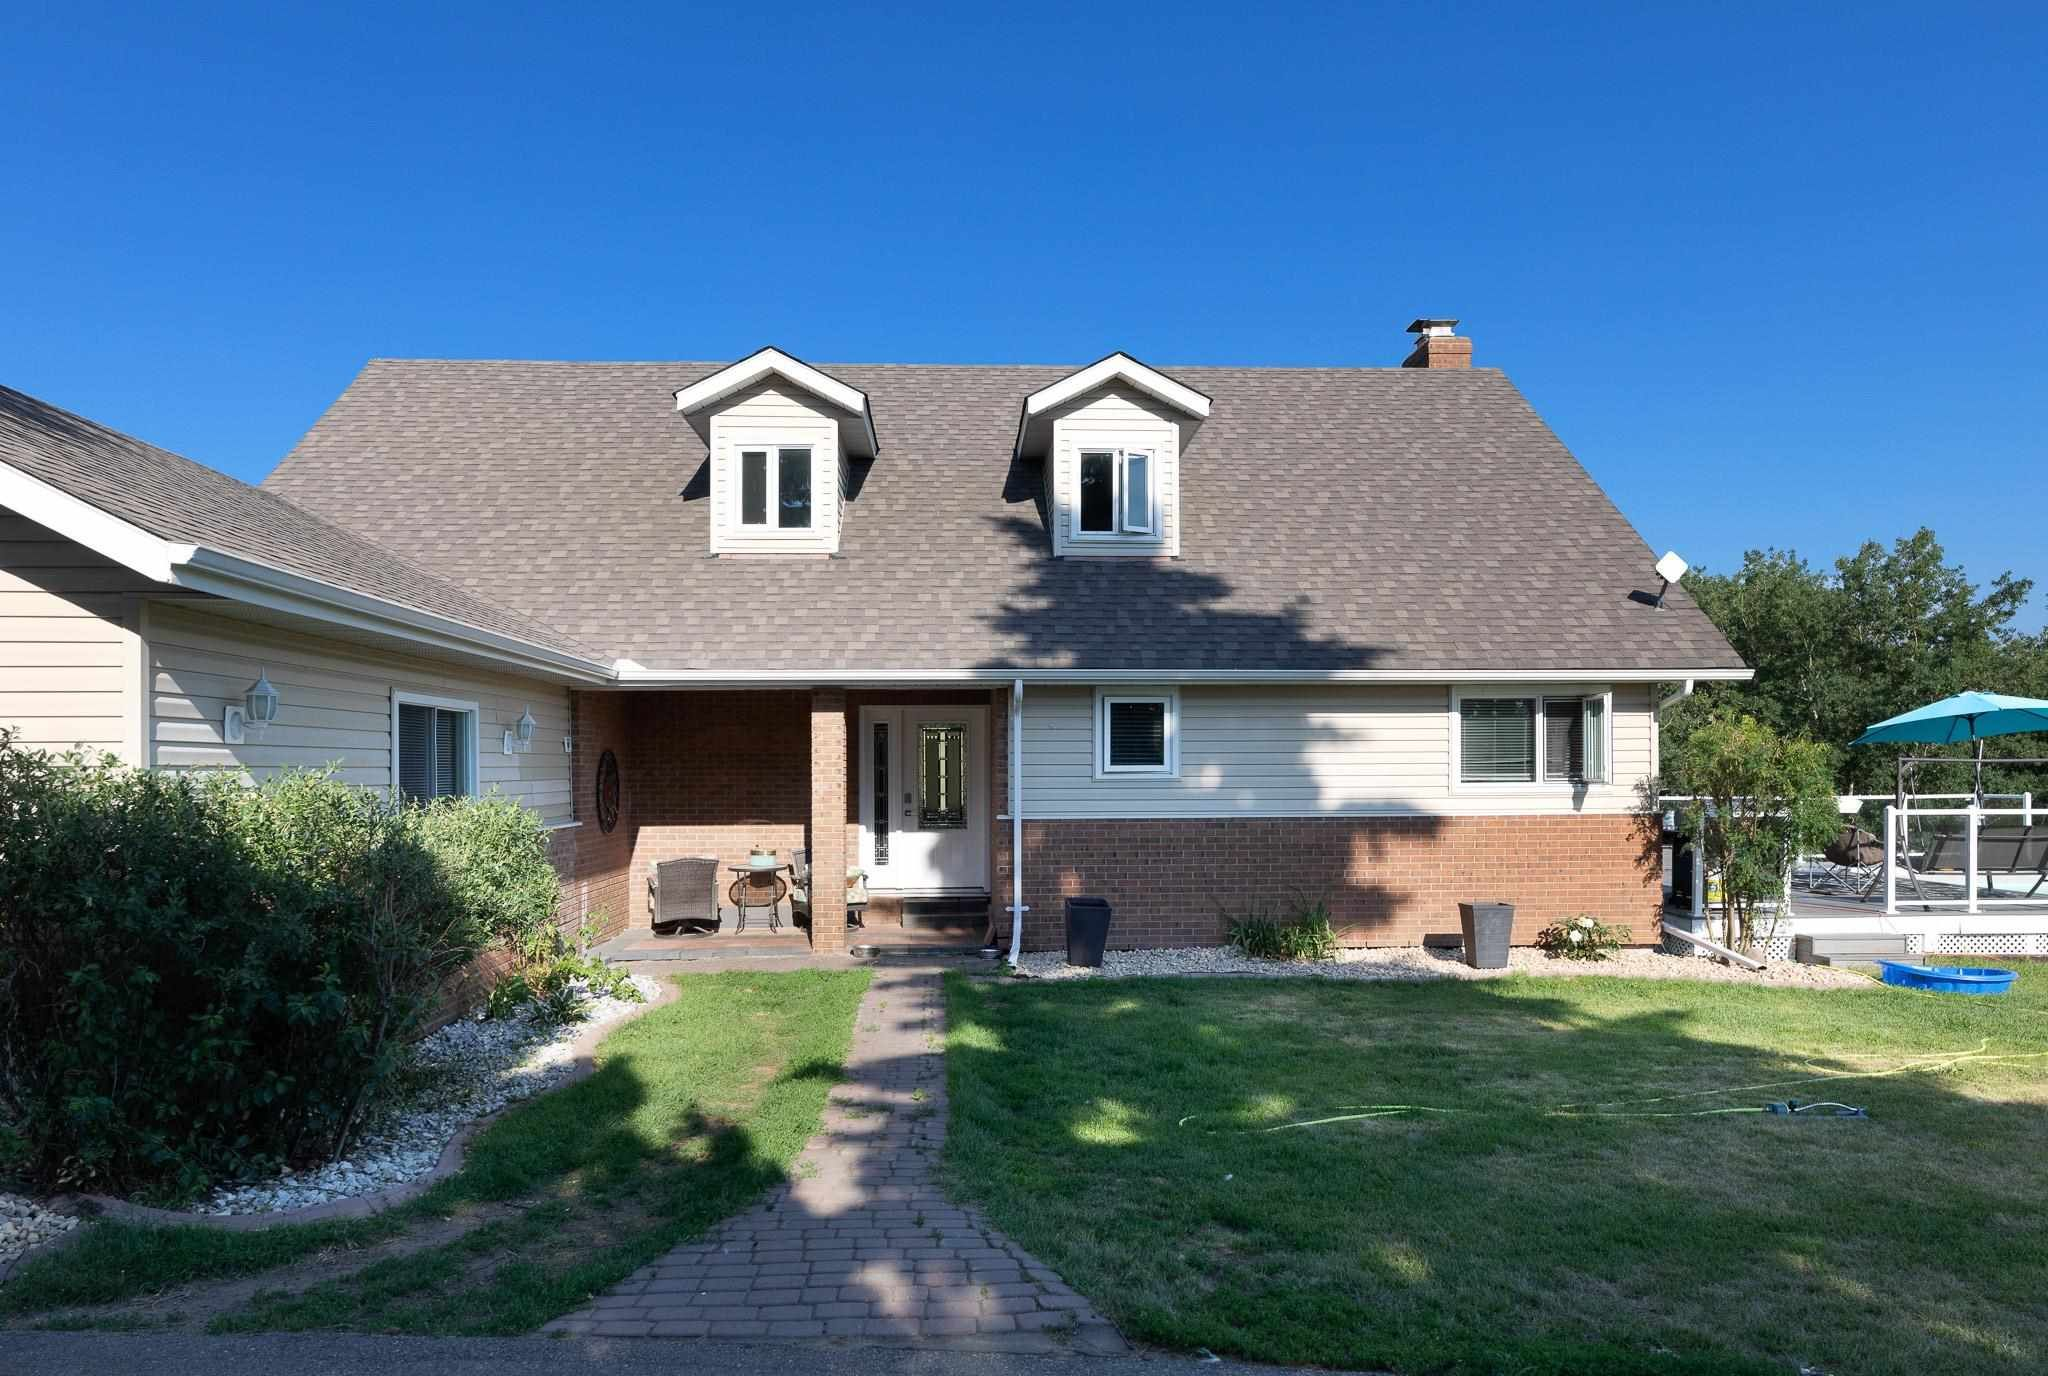 Main Photo: 135 472084 RGE RD 241: Rural Wetaskiwin County House for sale : MLS®# E4252462